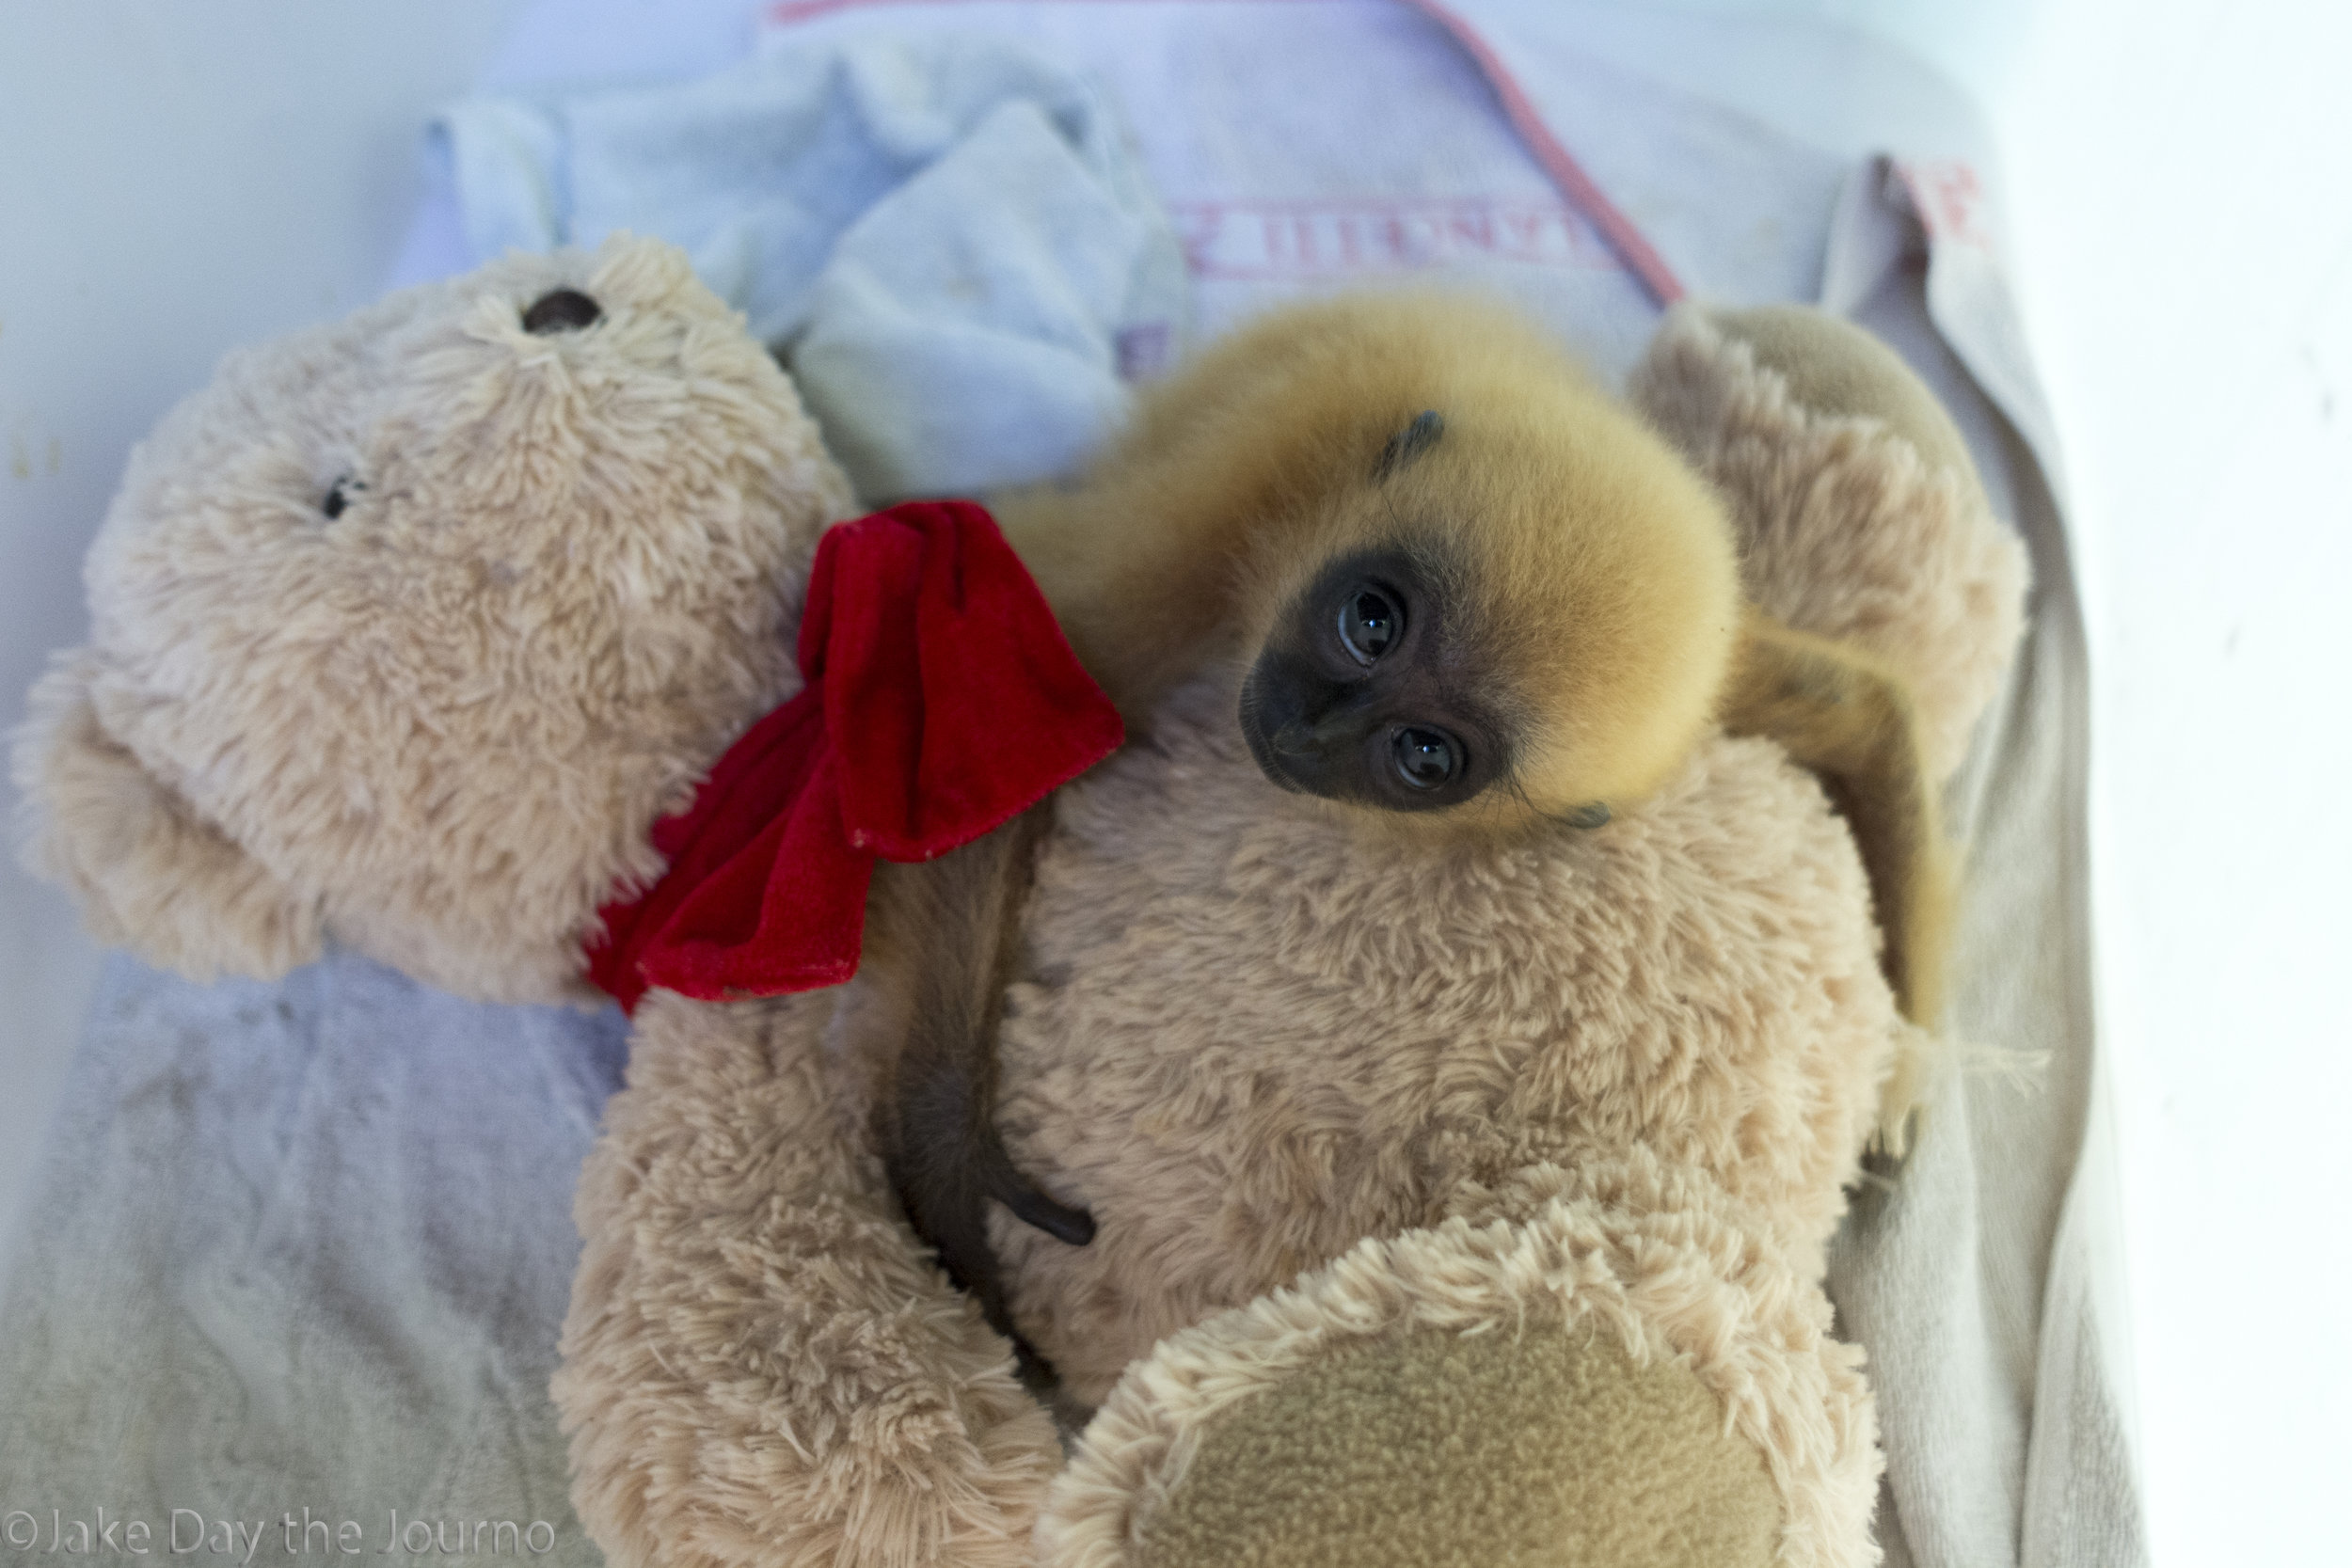 A baby Gibbon cuddles a surogate teddy bear at Wildlife Alliance's Phnom Tamao Rehabilitation Centre on 11/01/2018 by Jake Day. The baby Gibbon clings to the teddy bear, continuously rocking the bear back and forth to simulate the motion its mother would make it the wild.